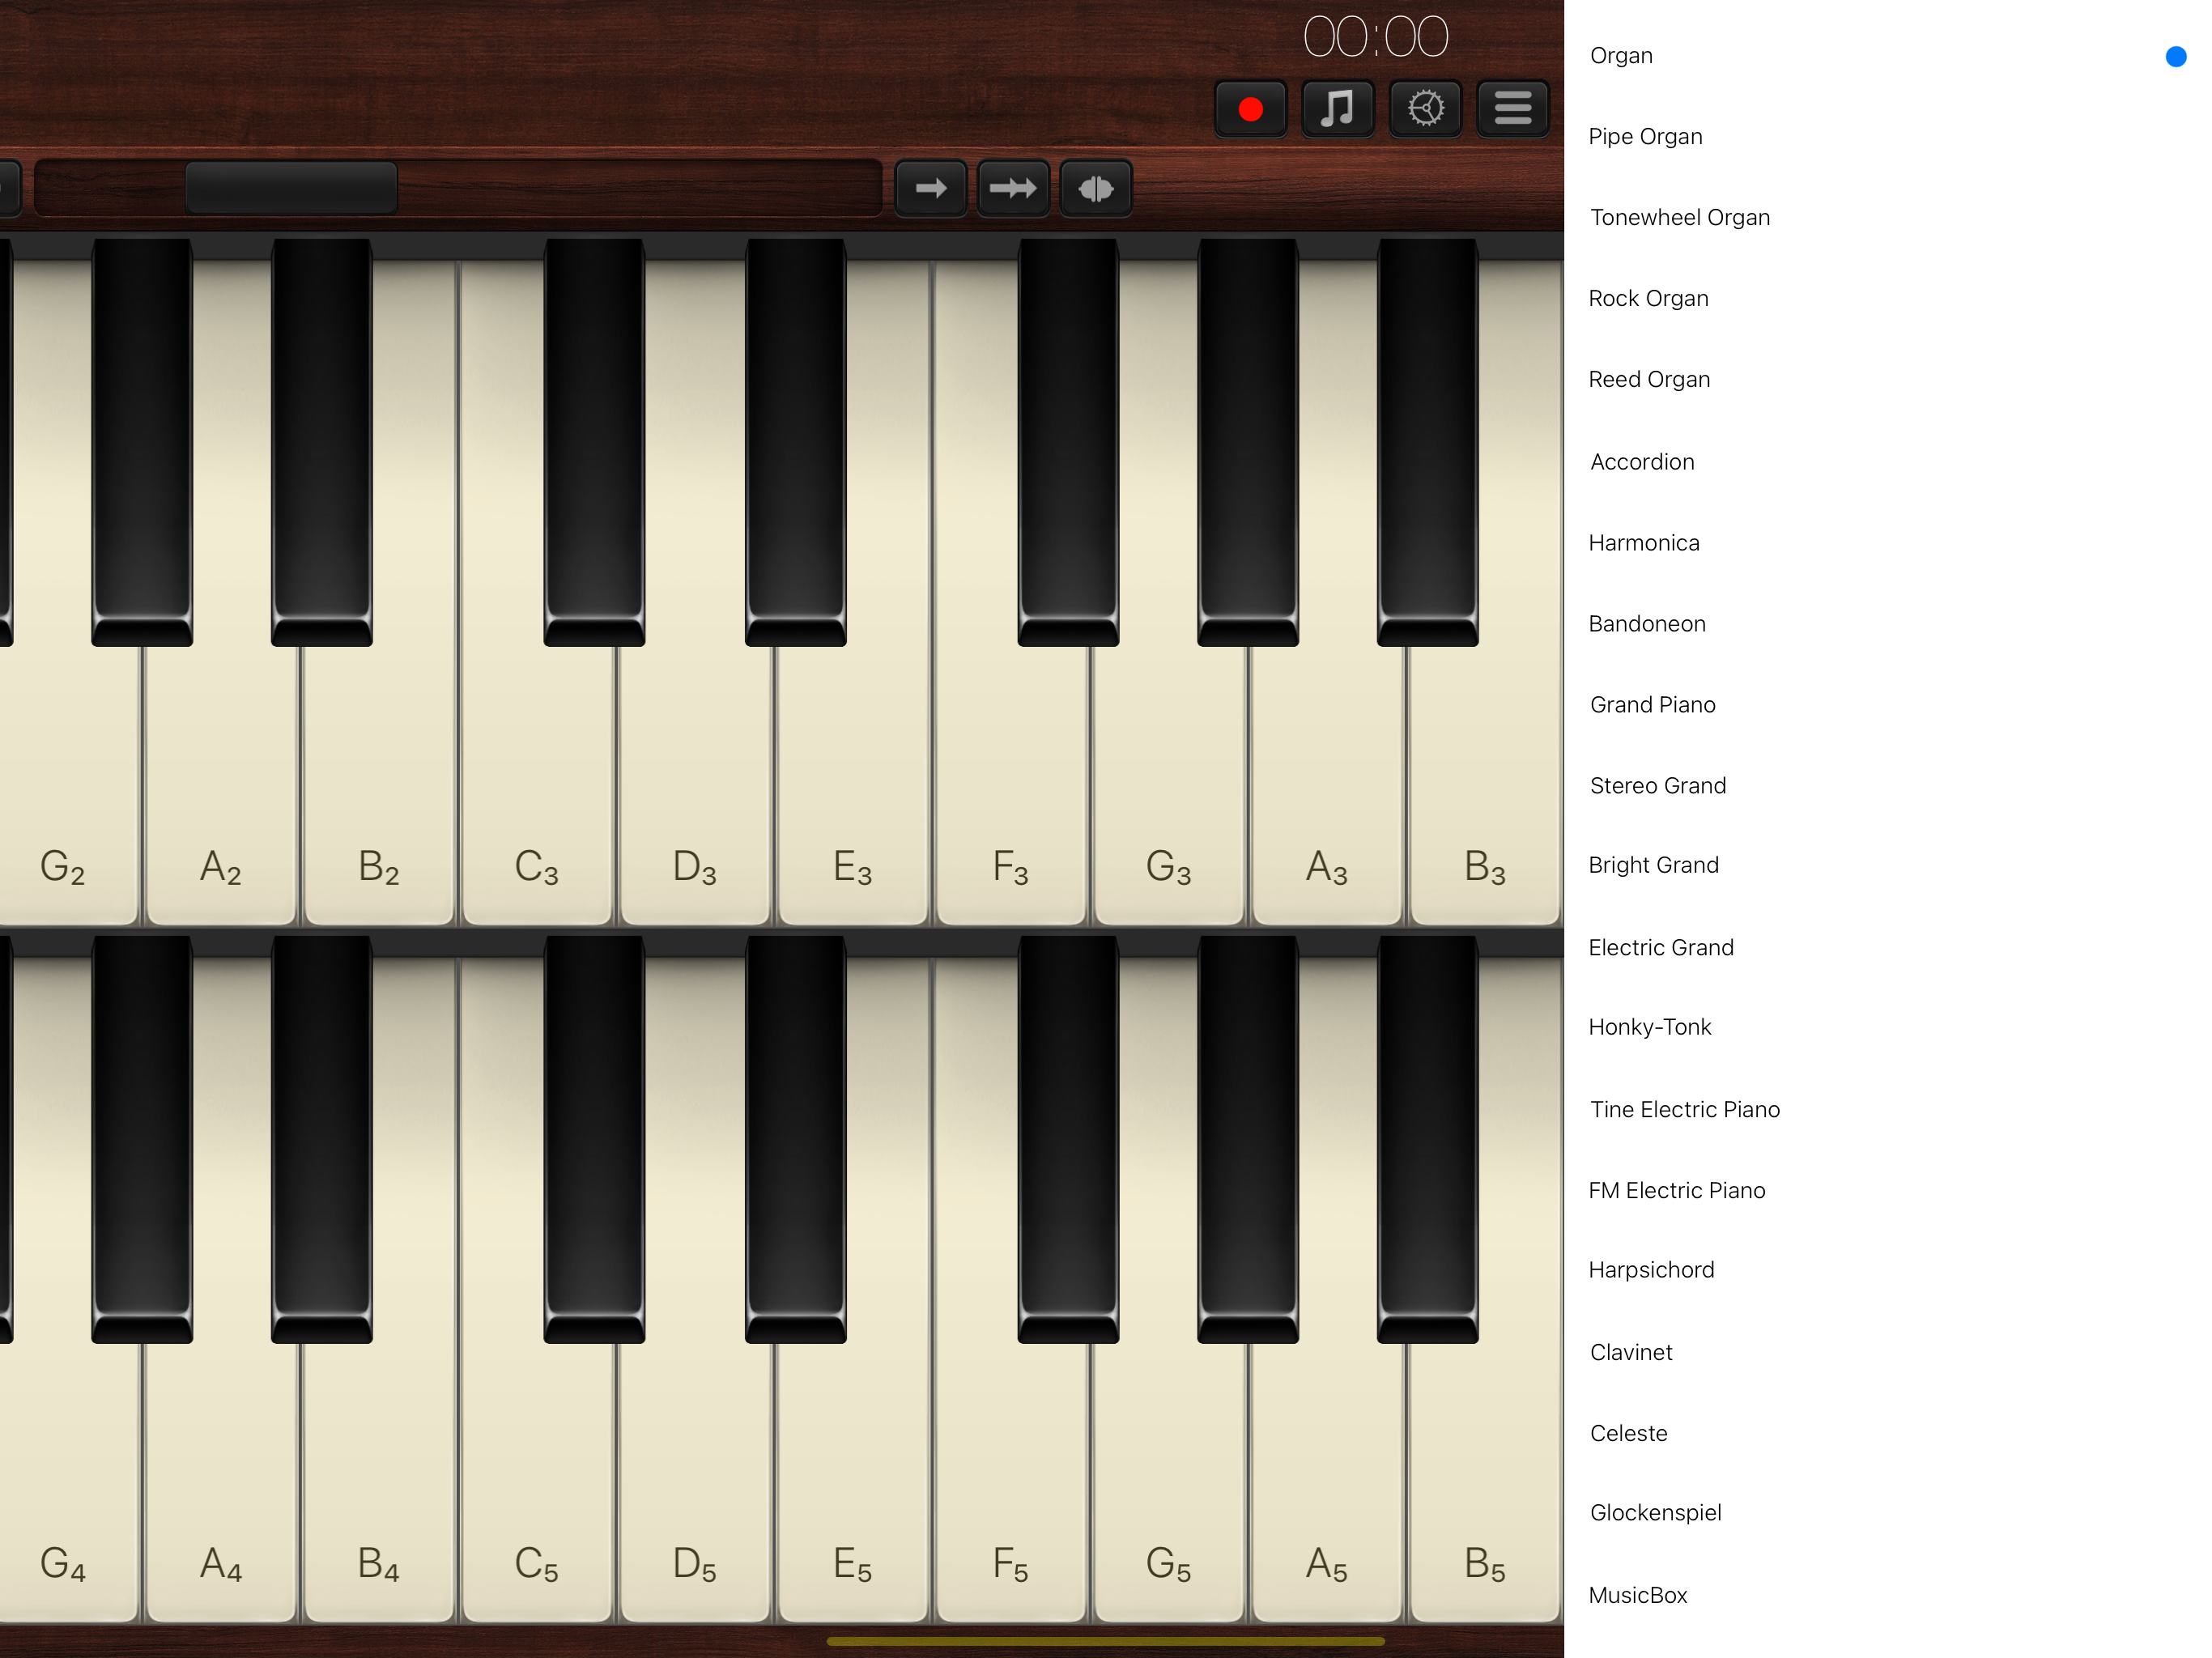 Organ 2.0 Released for iOS - Keyboard with 60 Musical Instruments Image